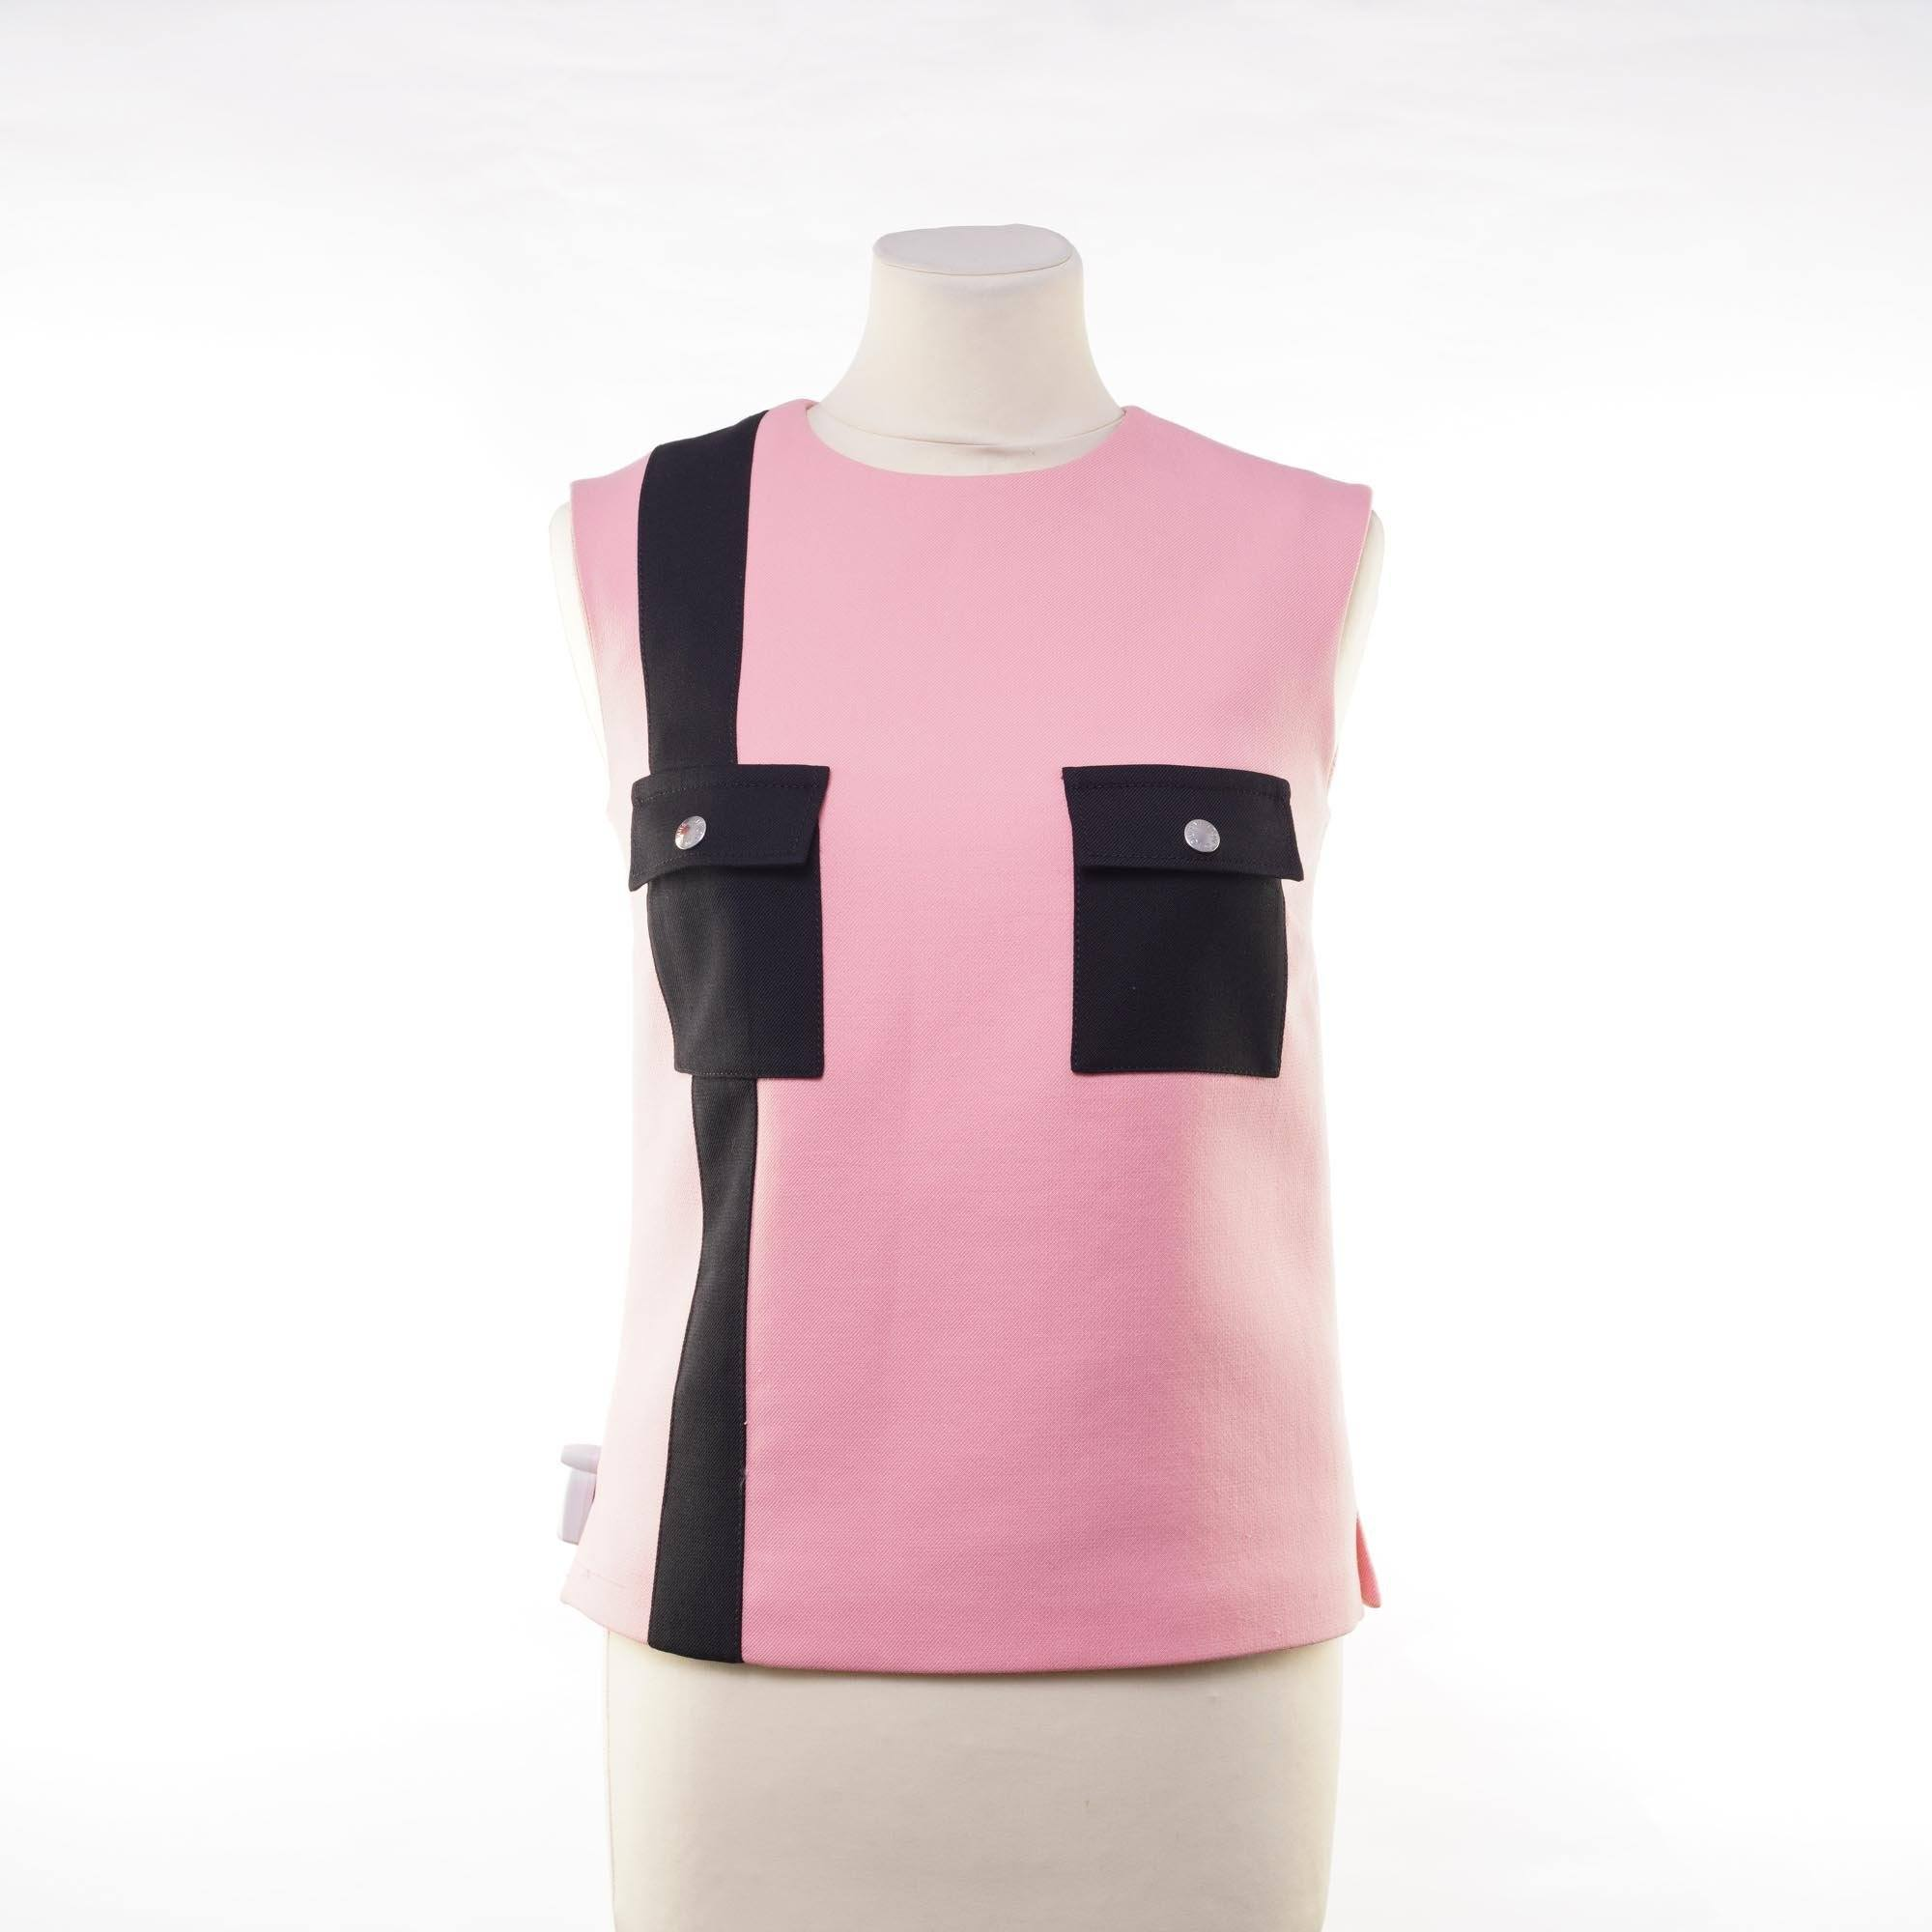 Louis Vuitton Sleeveless Pink Top